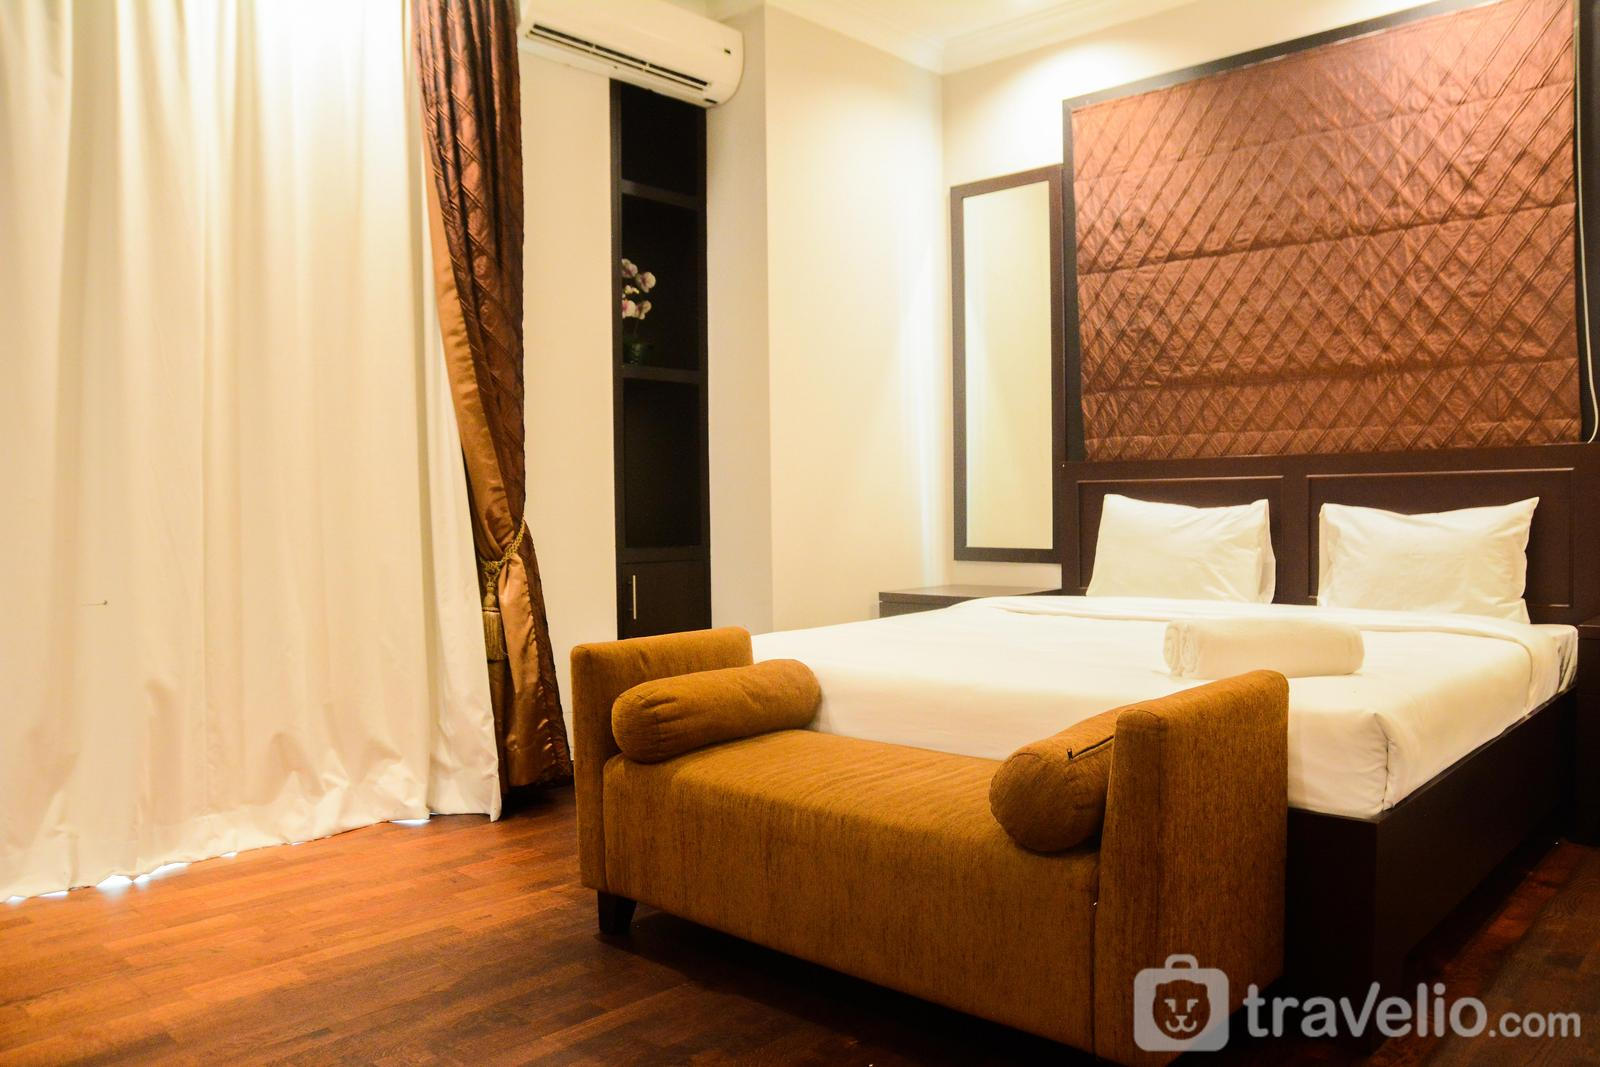 Apartemen Bellezza - Awesome 3BR Bellezza Permata Hijau Apartment near Senayan By Travelio